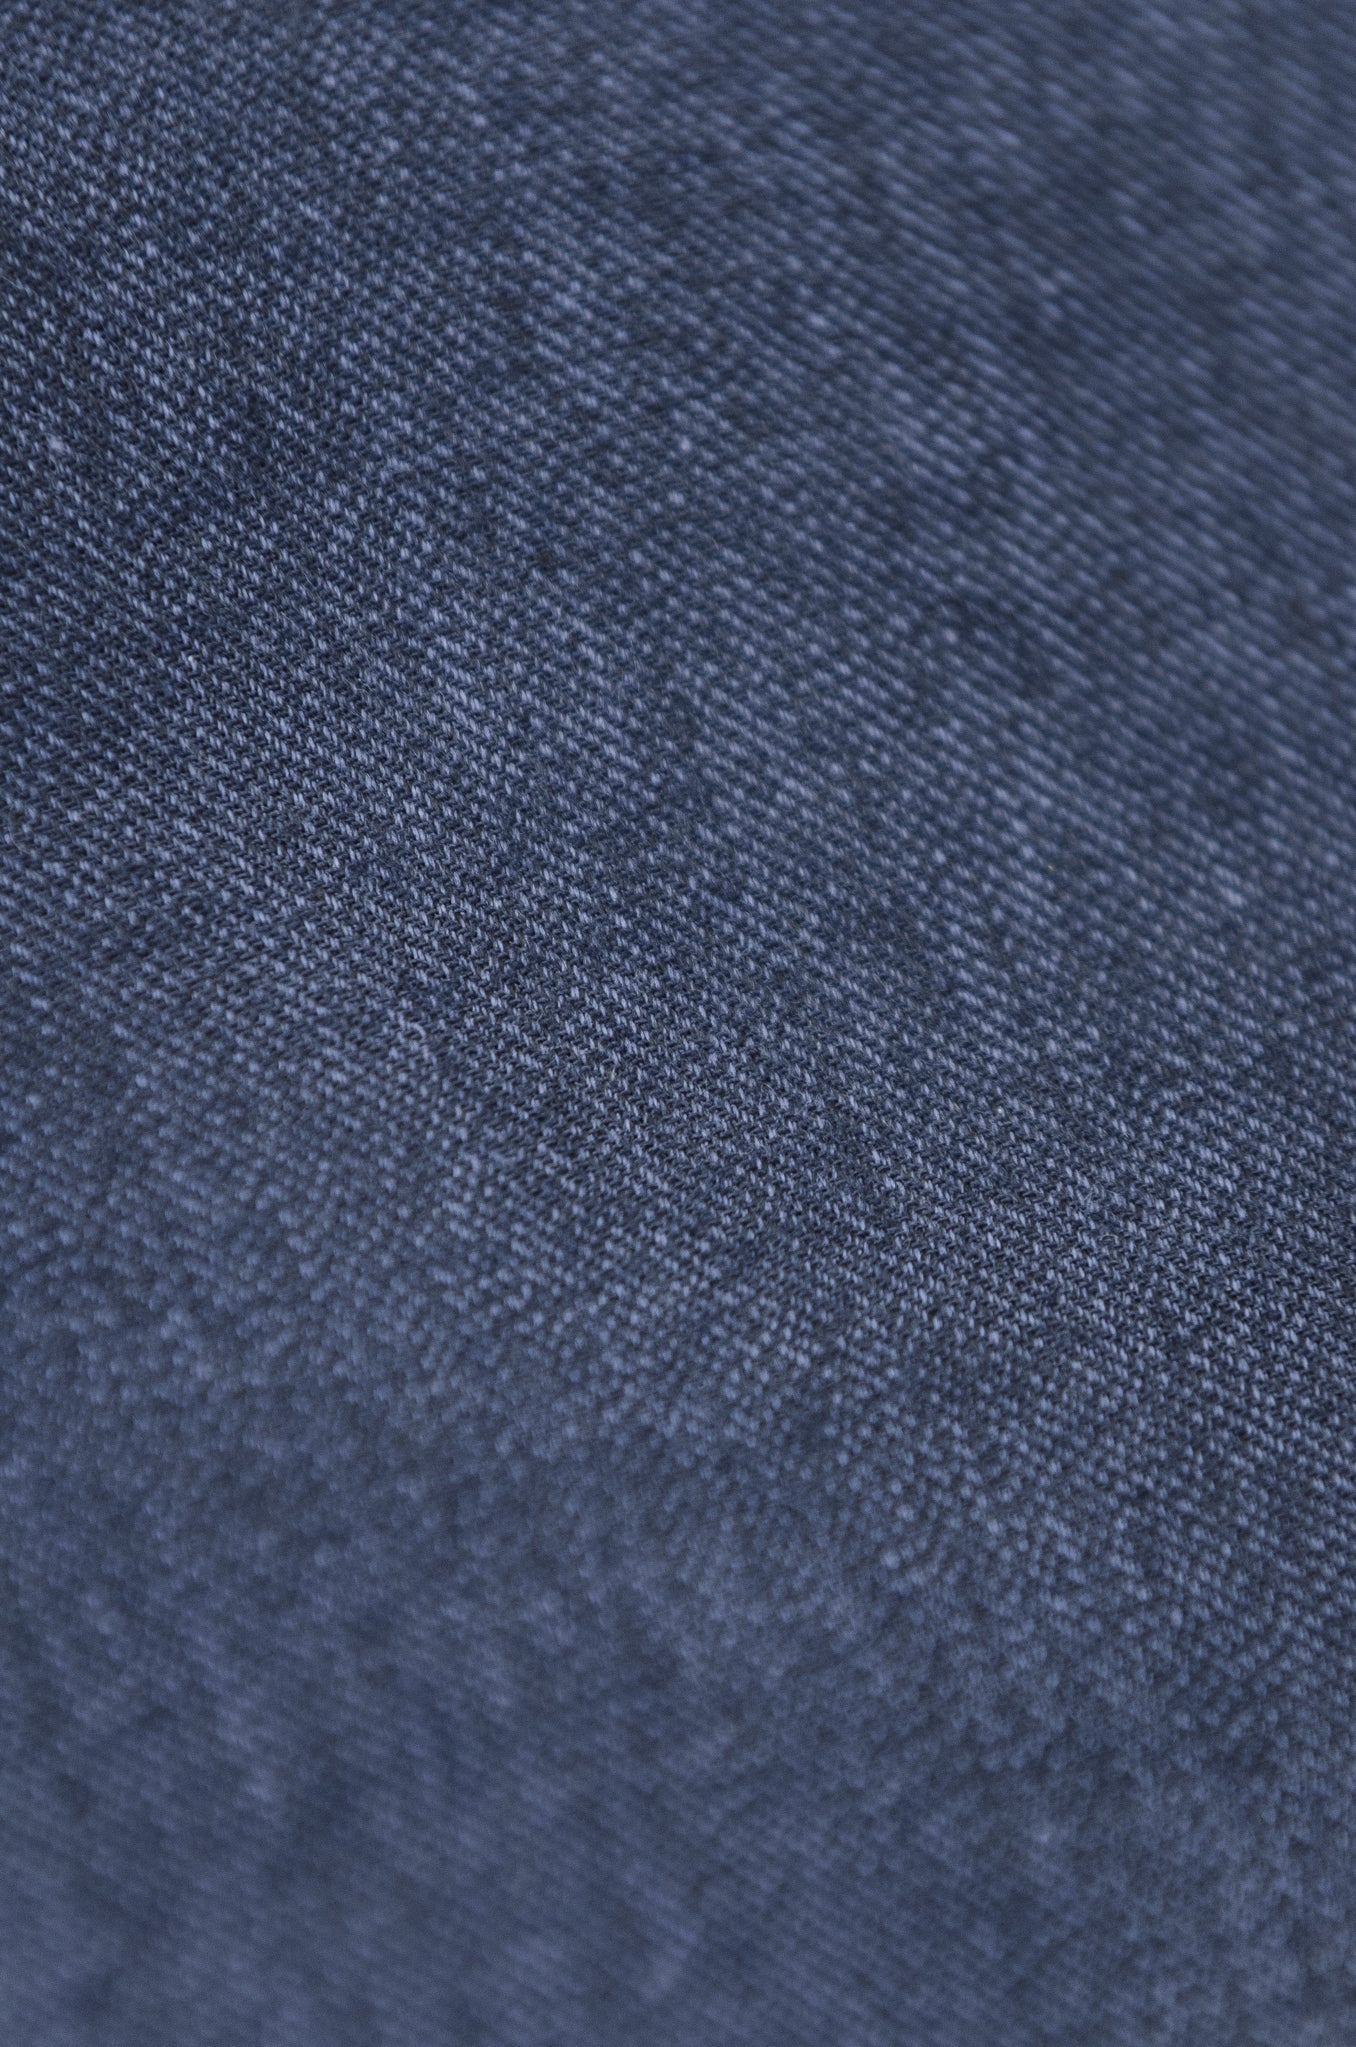 Clamenc Stretch Soft Twill (dark blue)